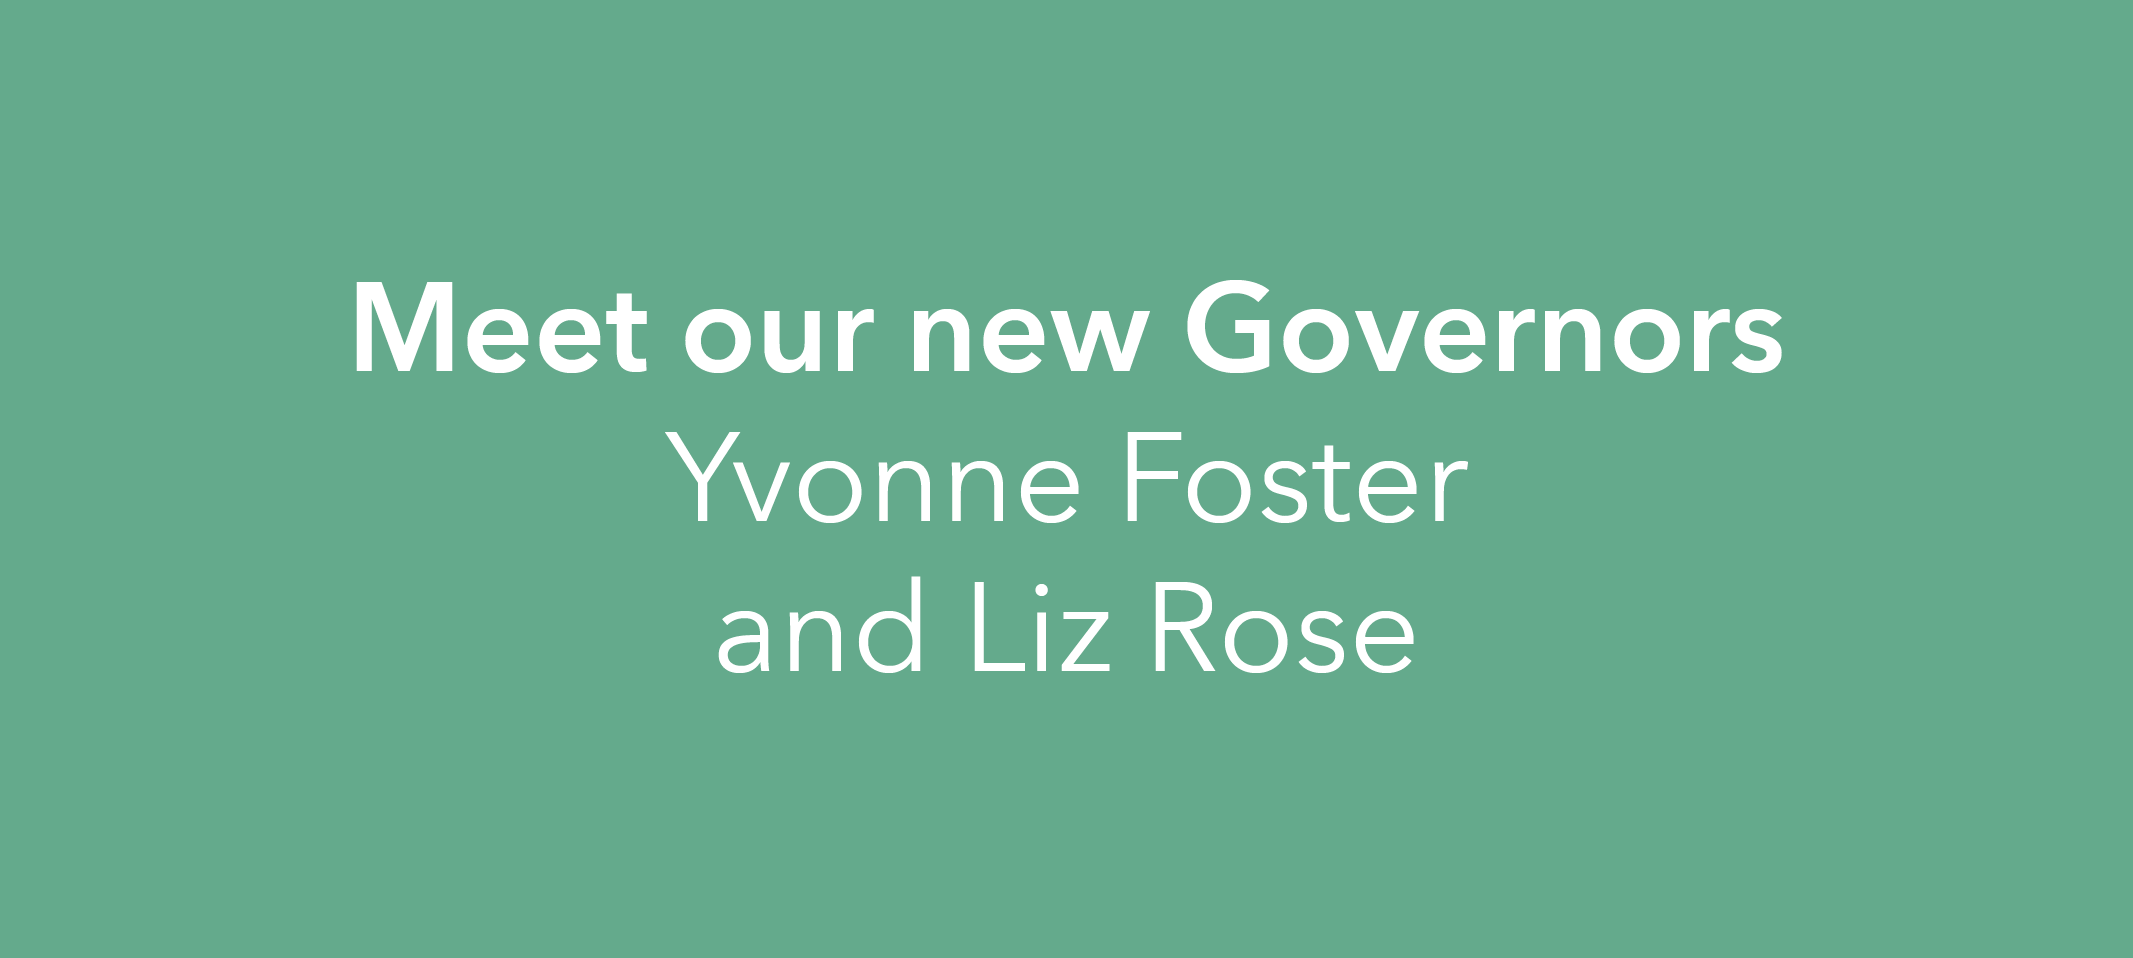 Meet our Governors- Yvonne Foster and Liz Rose